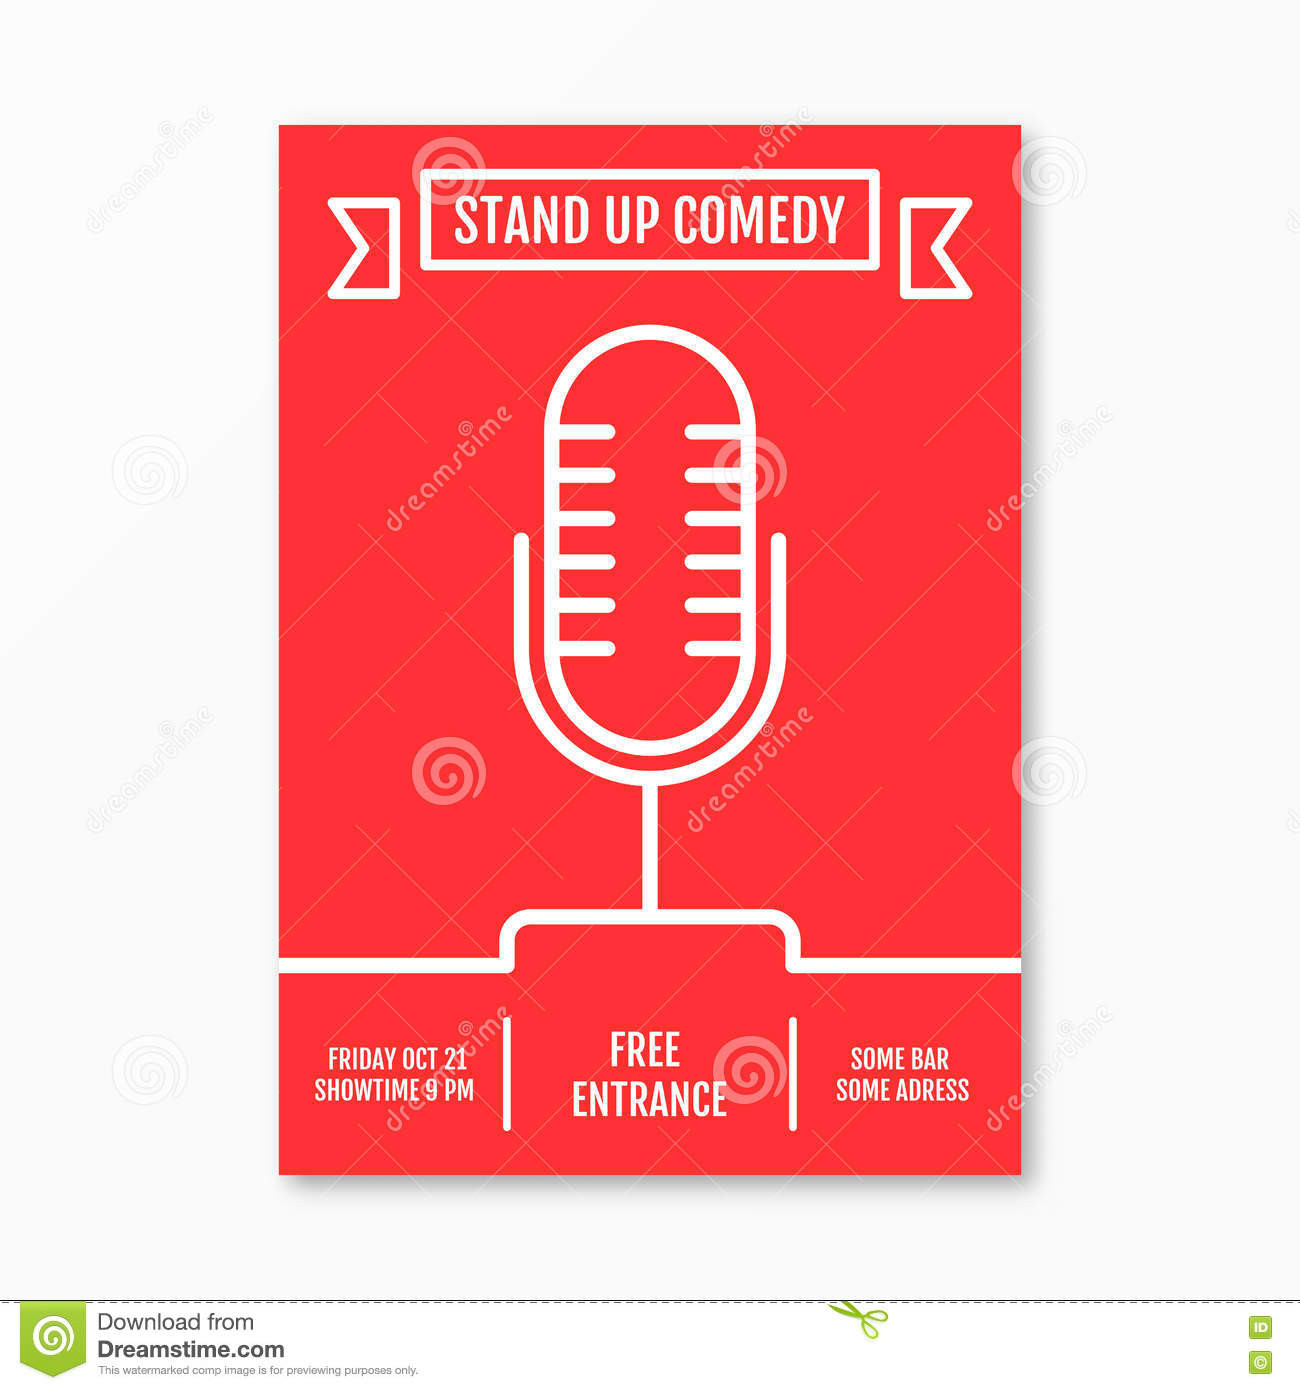 Vector Illustration of stand up Comedy in Night Club event